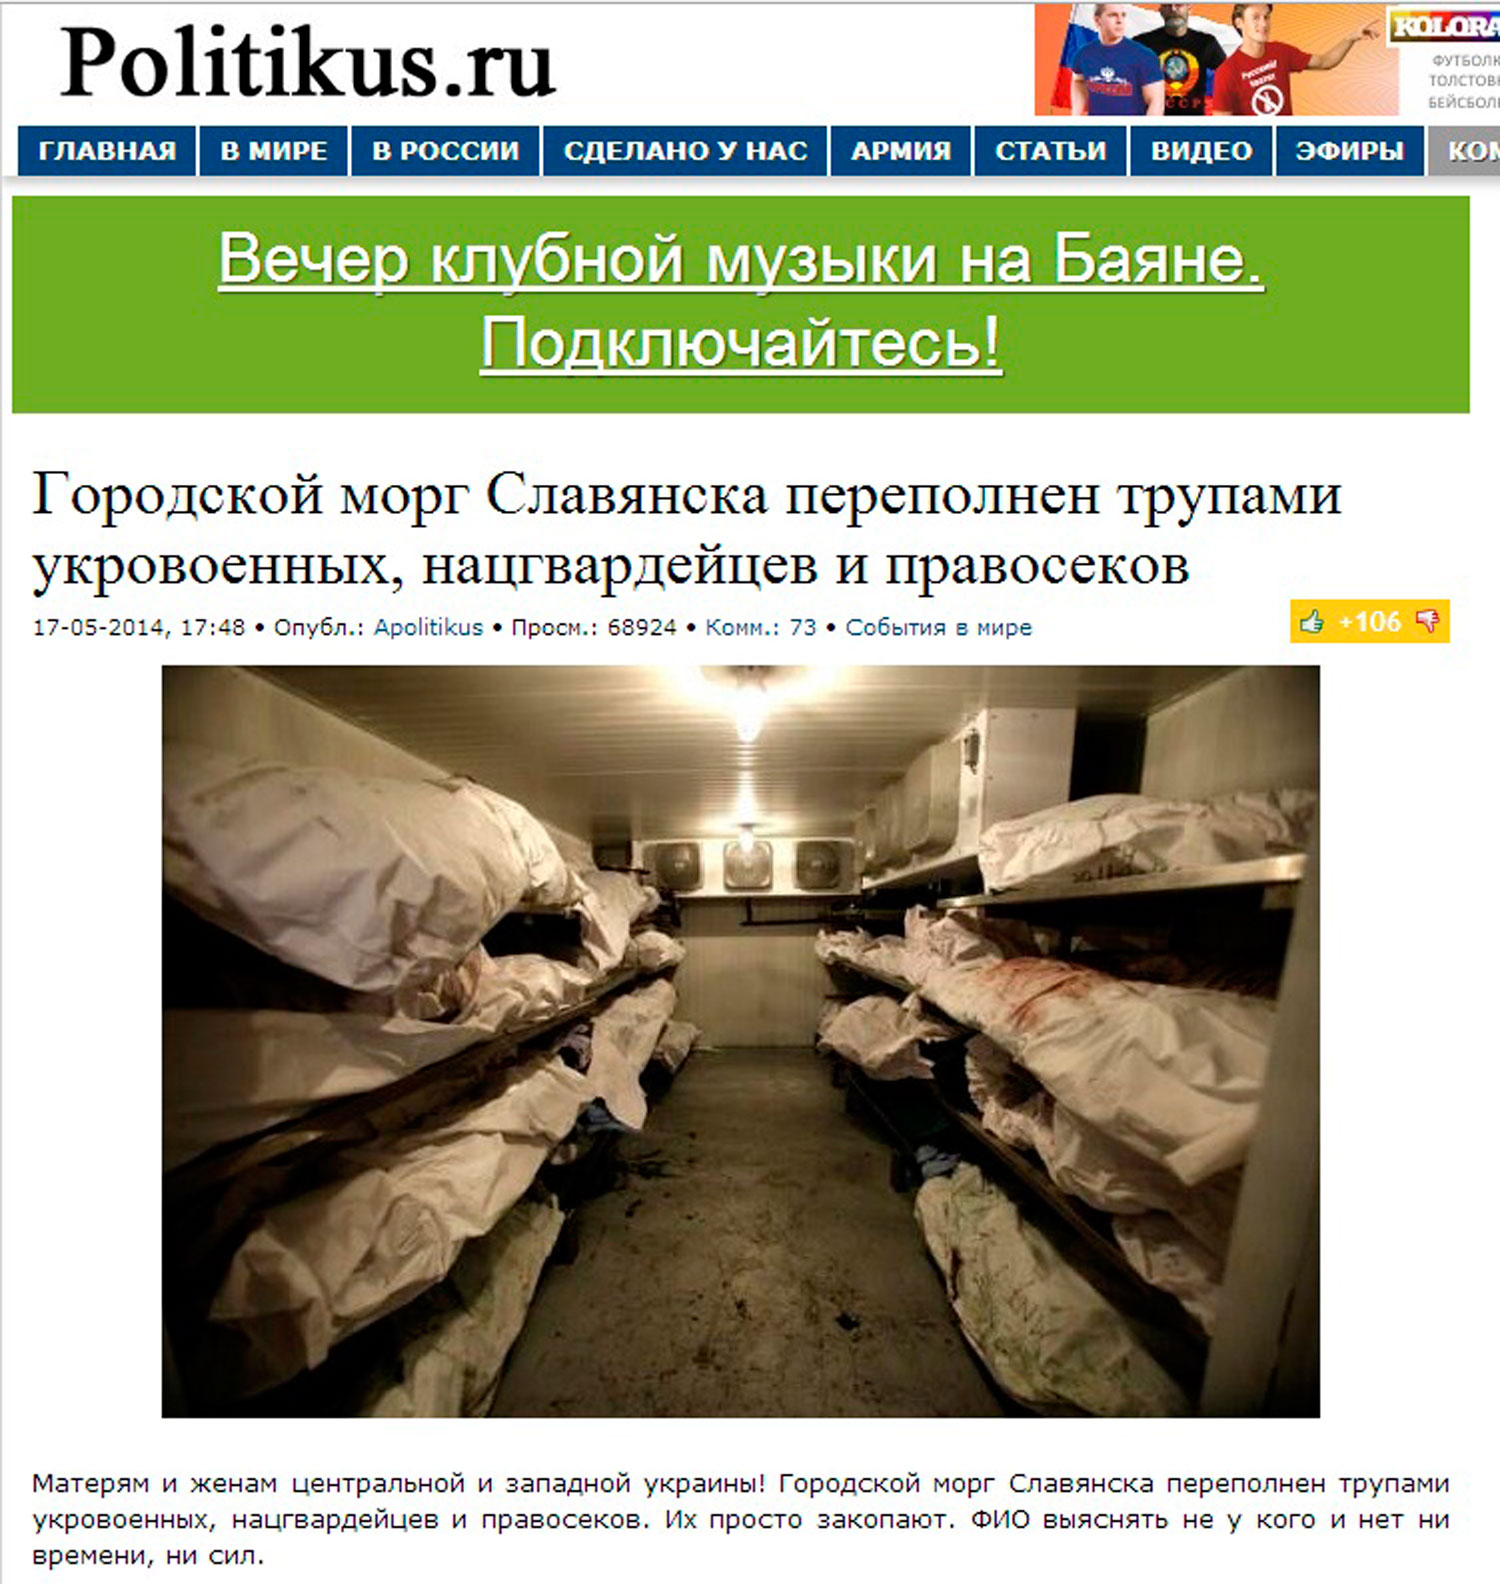 This photo posted on Politikus.ru claimed to show a morgue in Sloviansk overstocked with bodies of Ukrainian militants and National Guardsmen who were about to be buried as unidentified.